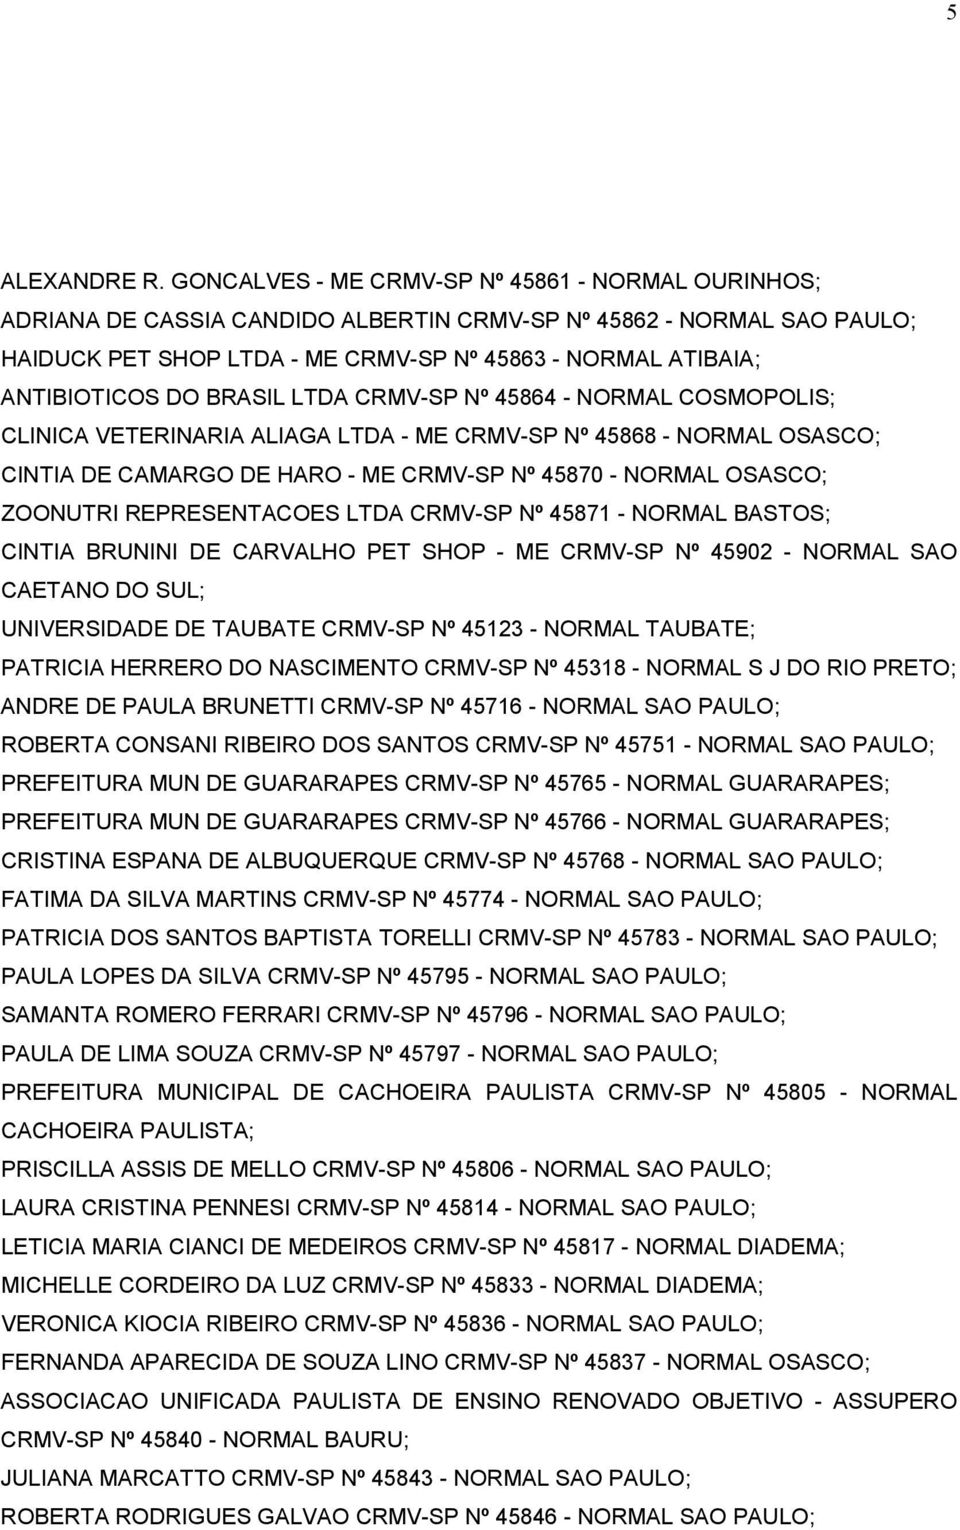 DO BRASIL LTDA CRMV-SP Nº 45864 - NORMAL COSMOPOLIS; CLINICA VETERINARIA ALIAGA LTDA - ME CRMV-SP Nº 45868 - NORMAL OSASCO; CINTIA DE CAMARGO DE HARO - ME CRMV-SP Nº 45870 - NORMAL OSASCO; ZOONUTRI